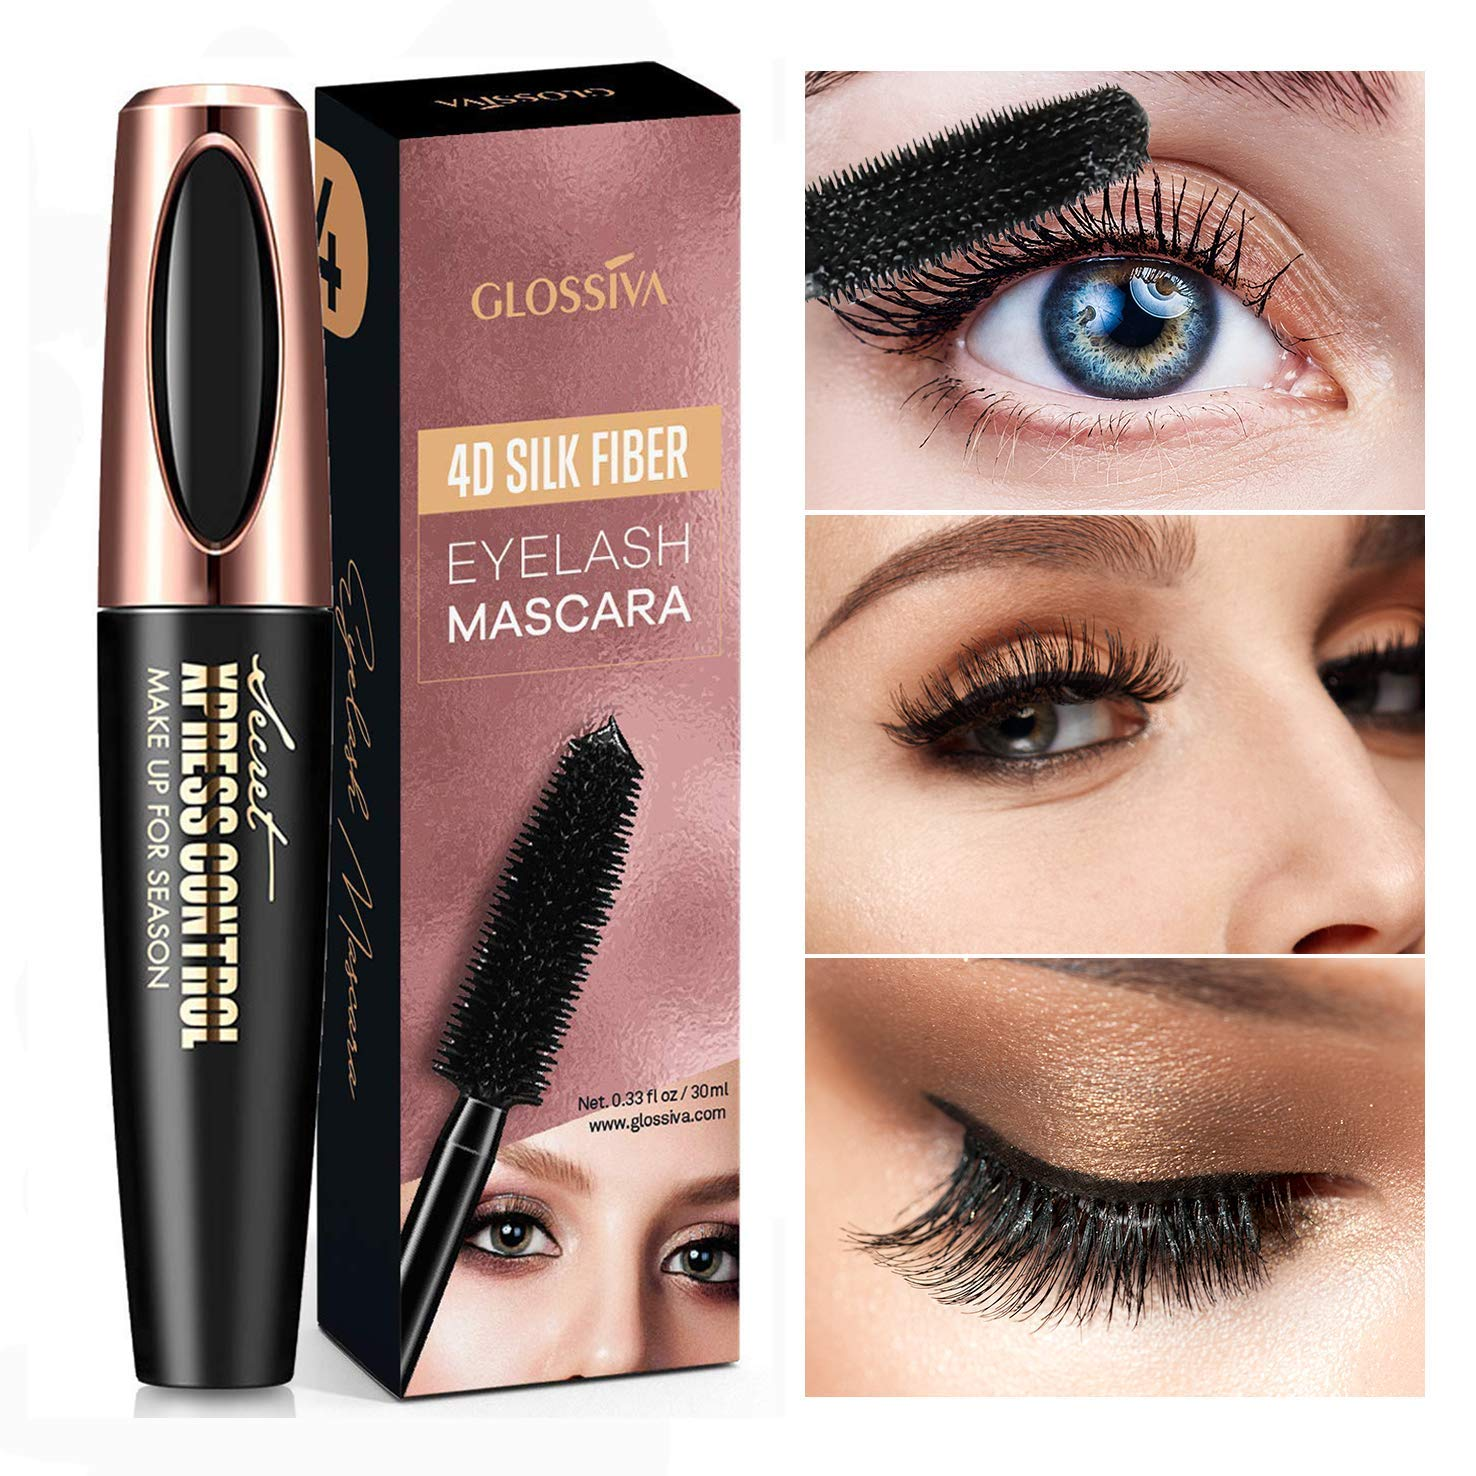 Natural 4D Silk Fiber Lash Mascara, Lengthening and Thick, Long Lasting, Waterproof & Smudge-Proof, All Day Exquisitely Lush, Full, Long, Thick, Smudge-Proof Eyelashes